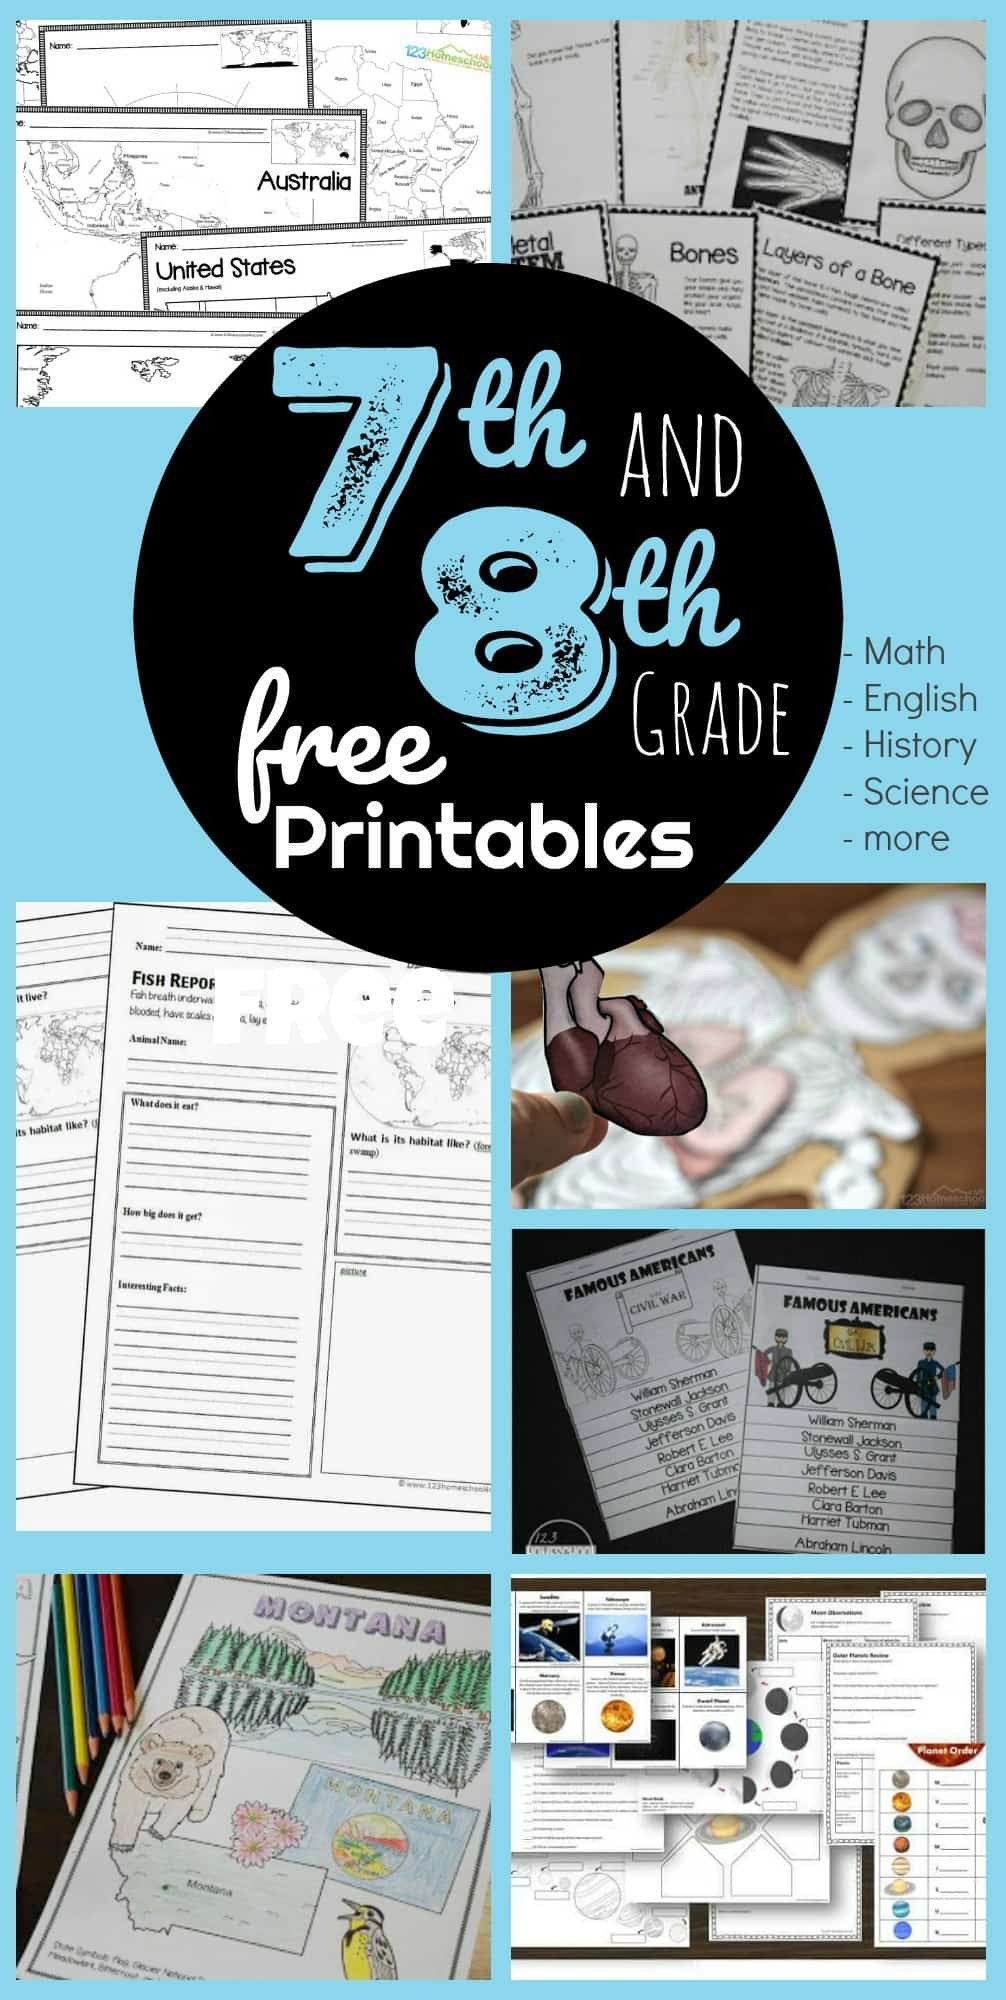 Probability Worksheets High School Pdf Free 7th 8th Grade Worksheets Probability Math is Fun Number